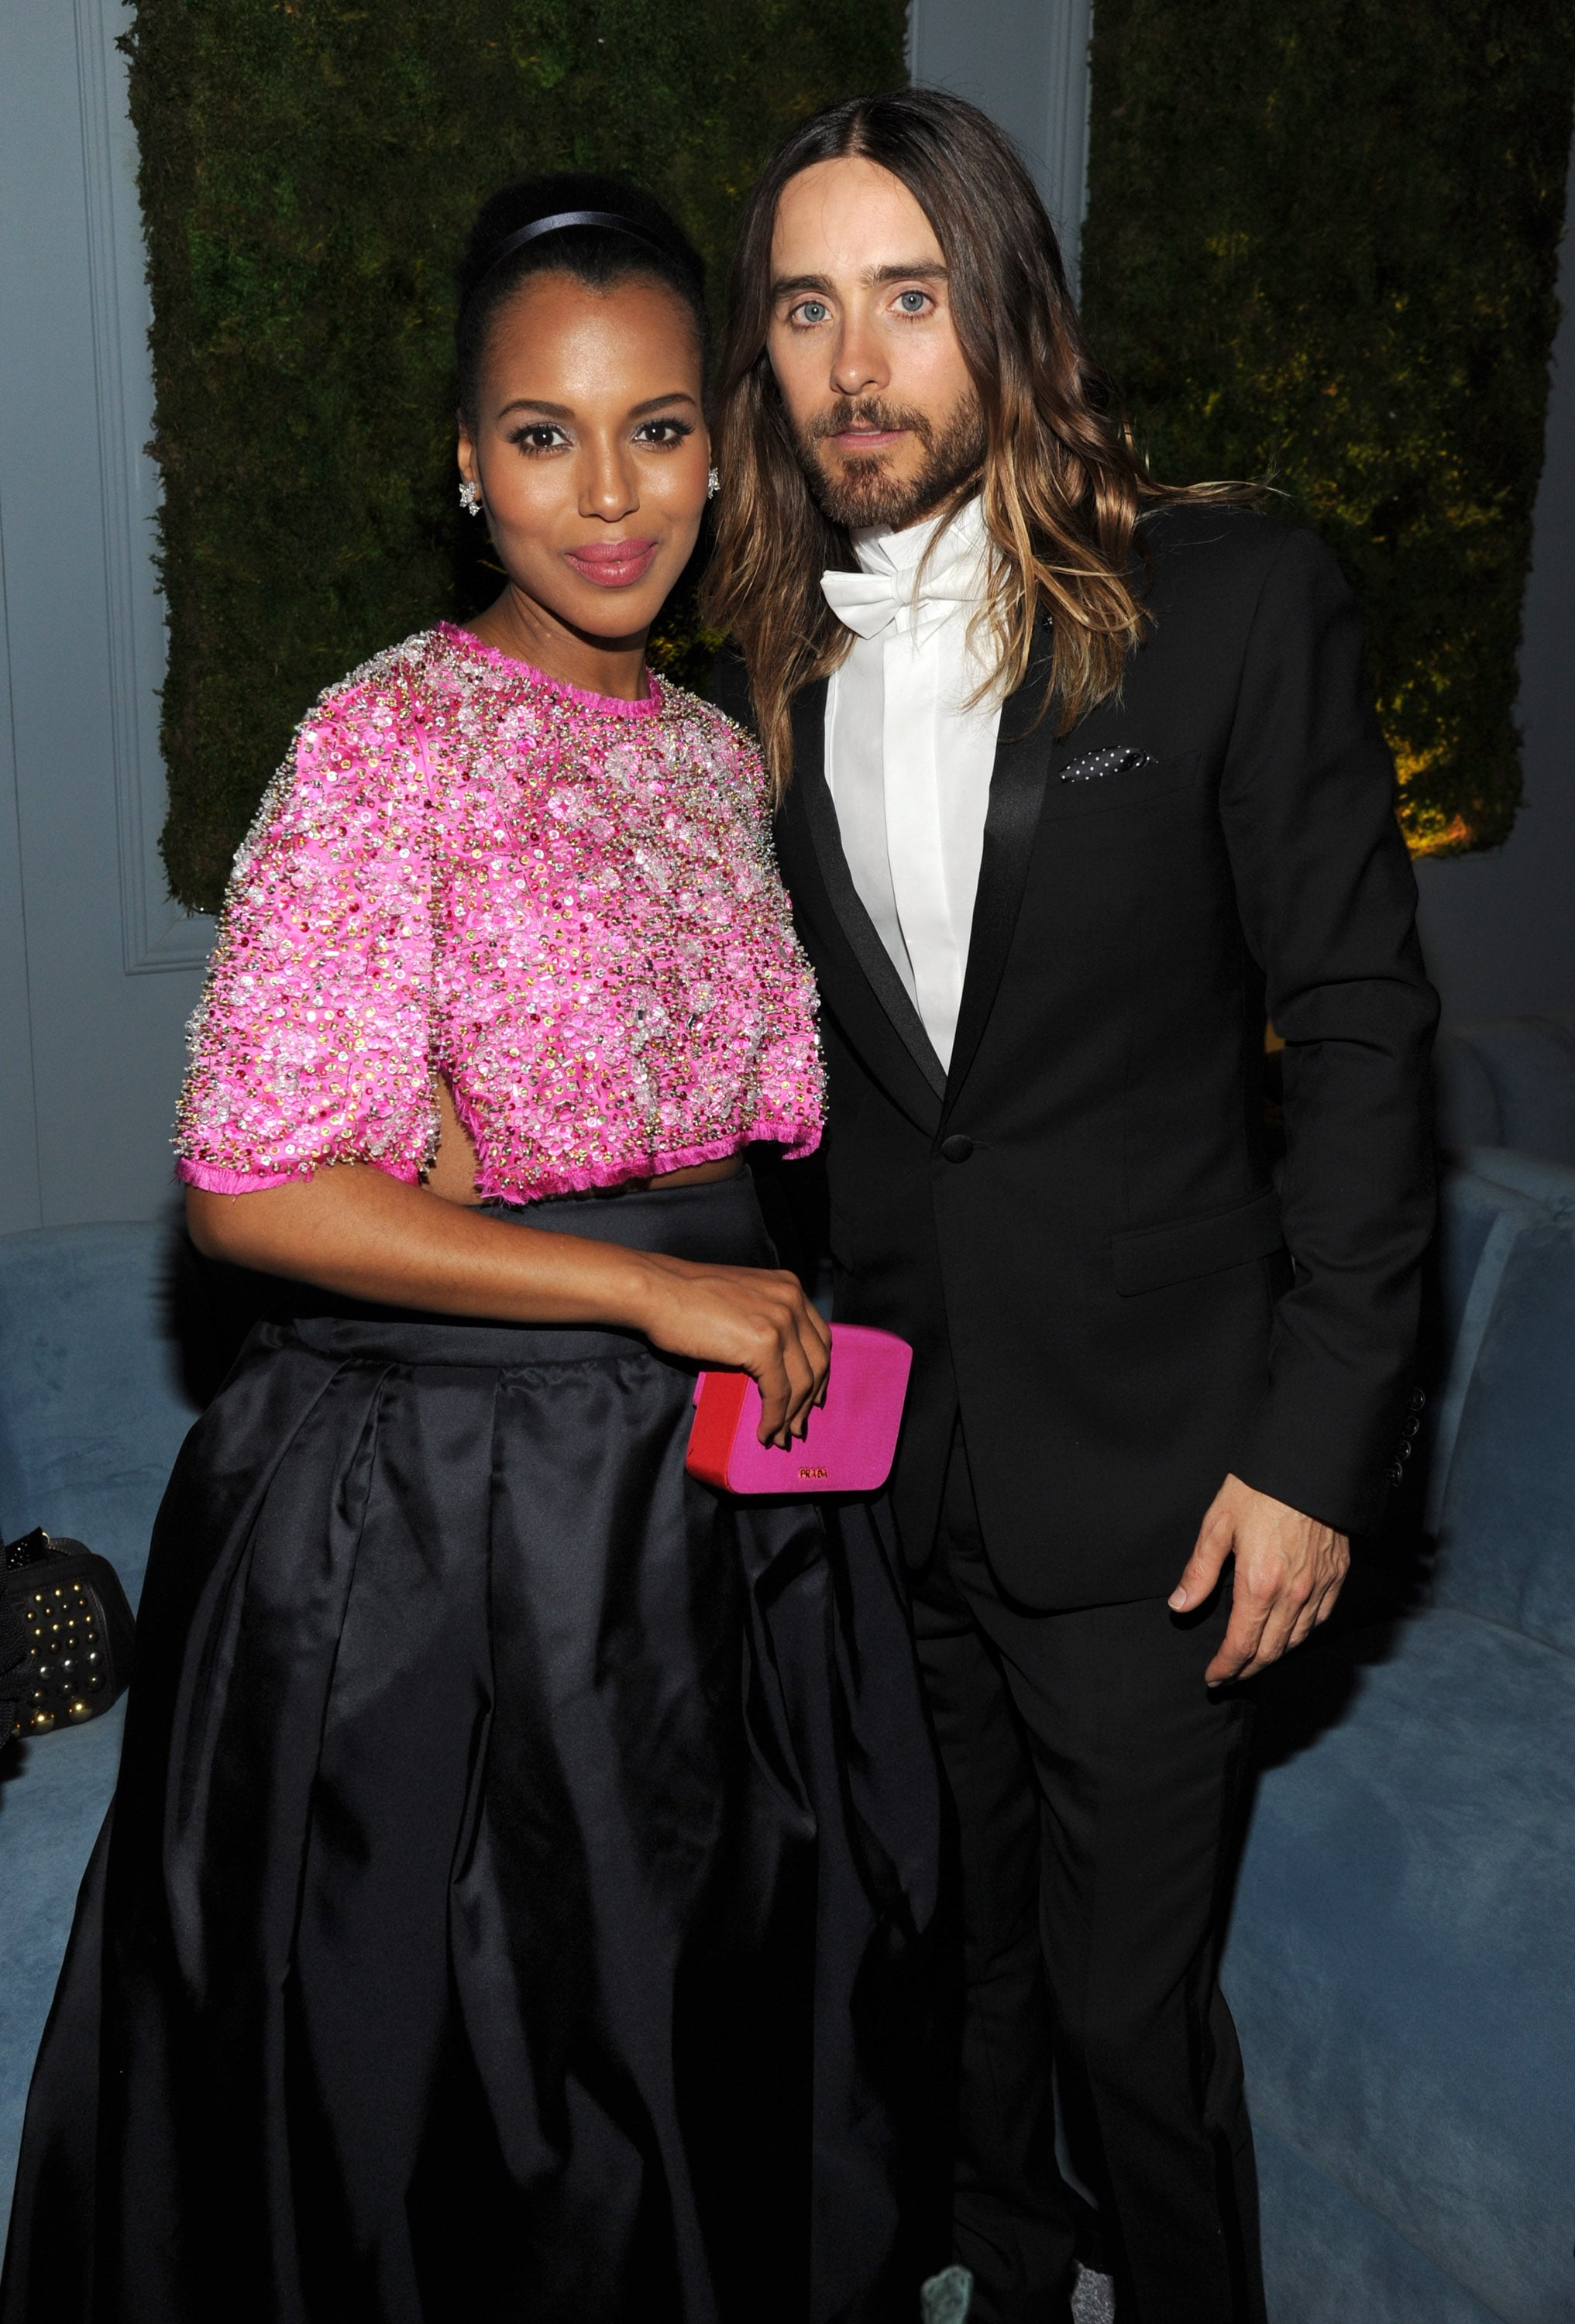 Jared posed with a delightfully pregnant Kerry Washington during the SAG Awards gala.